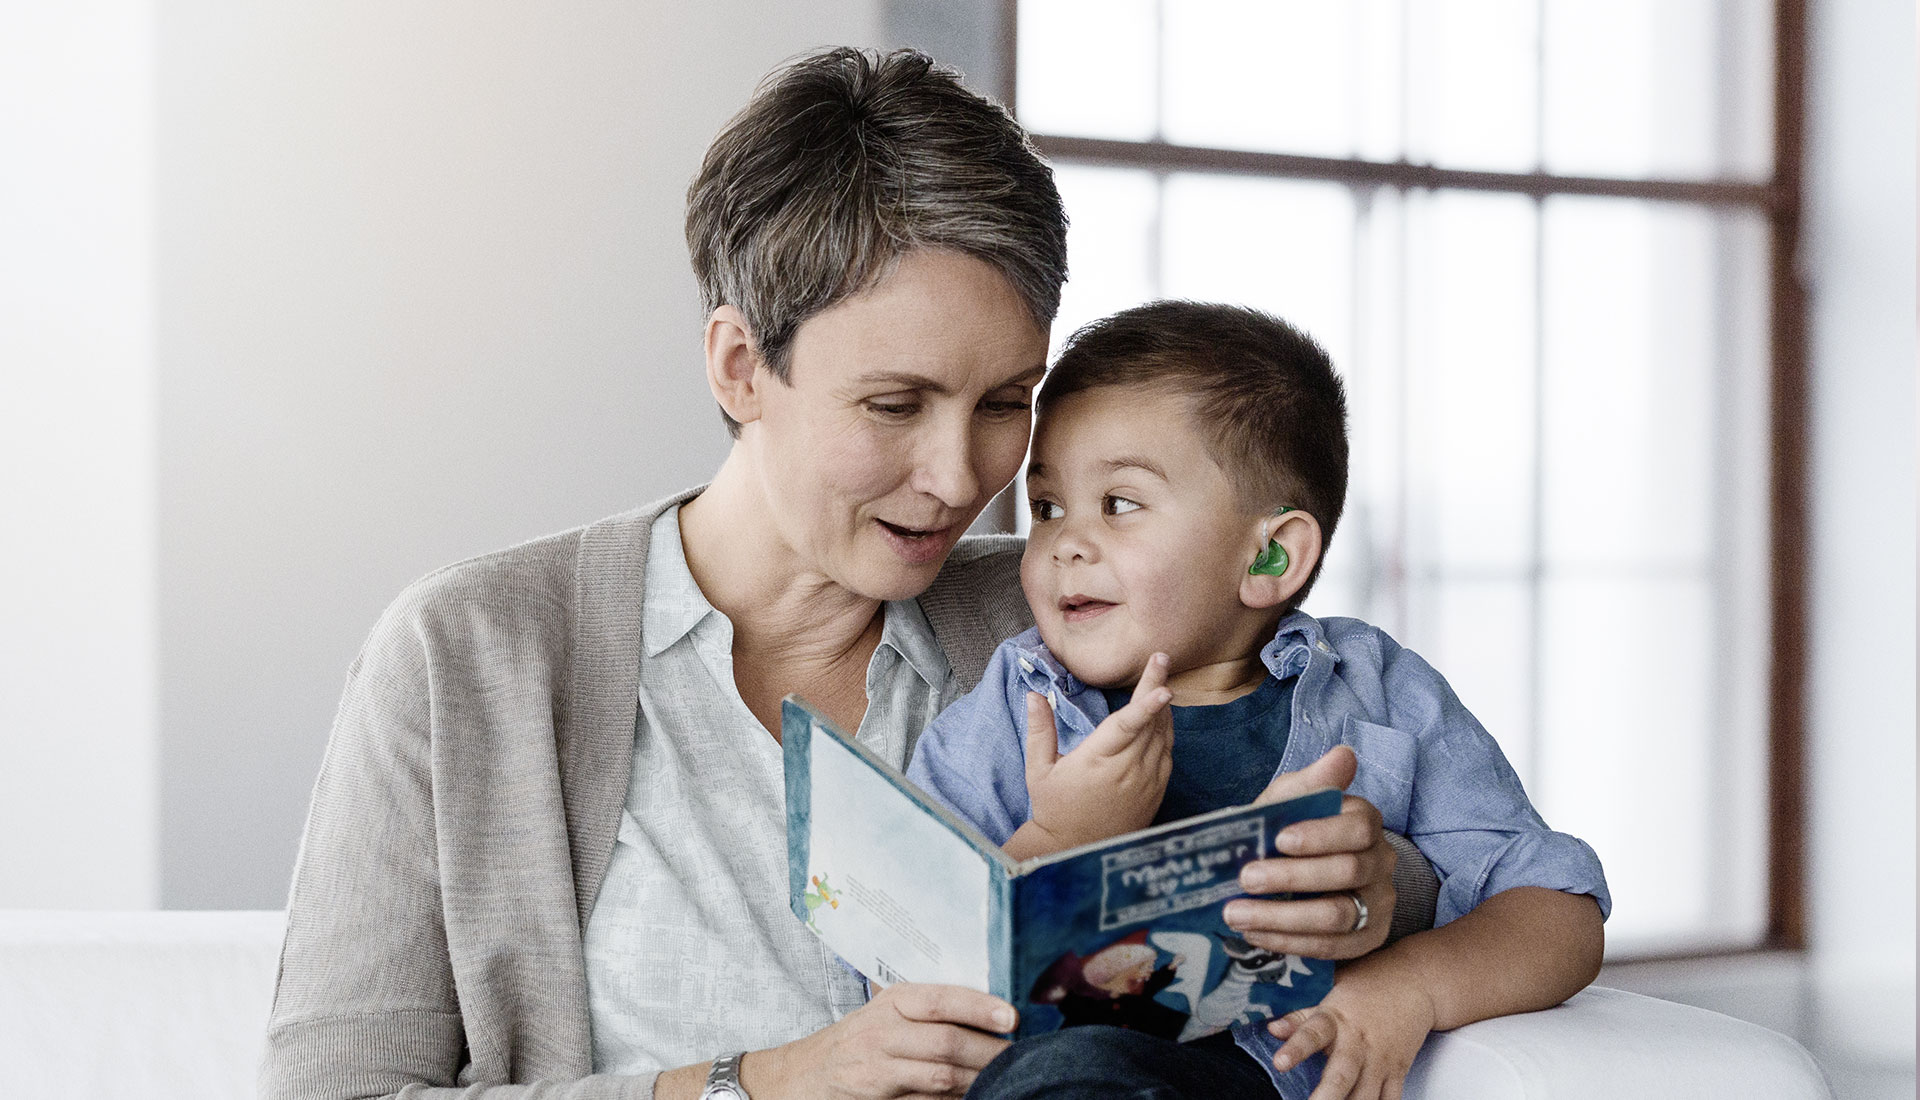 woman reading a book to a young boy